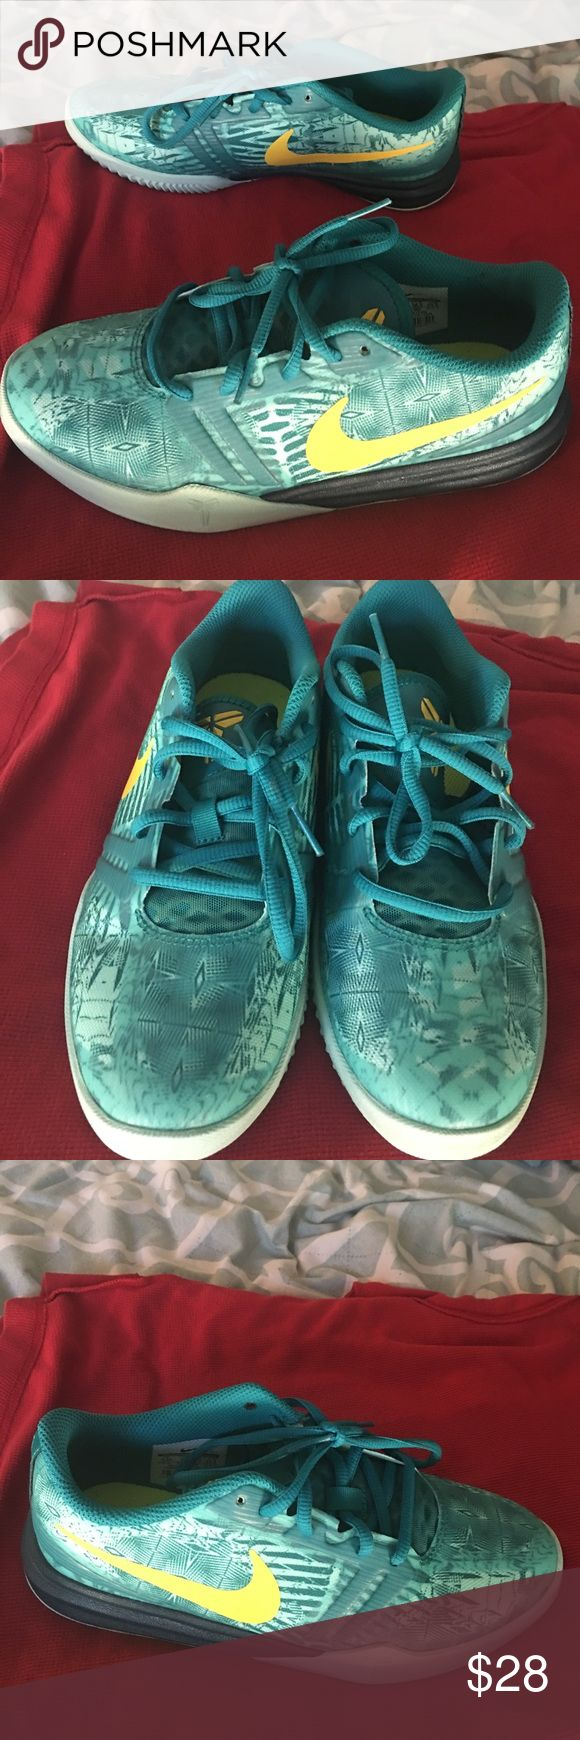 Nike shoes size 4.5 Youth womens 7 used Nike shoes size 4.5 youth women's size 7 great condition I only used them a couple of times green and yellow color Nike Shoes Athletic Shoes